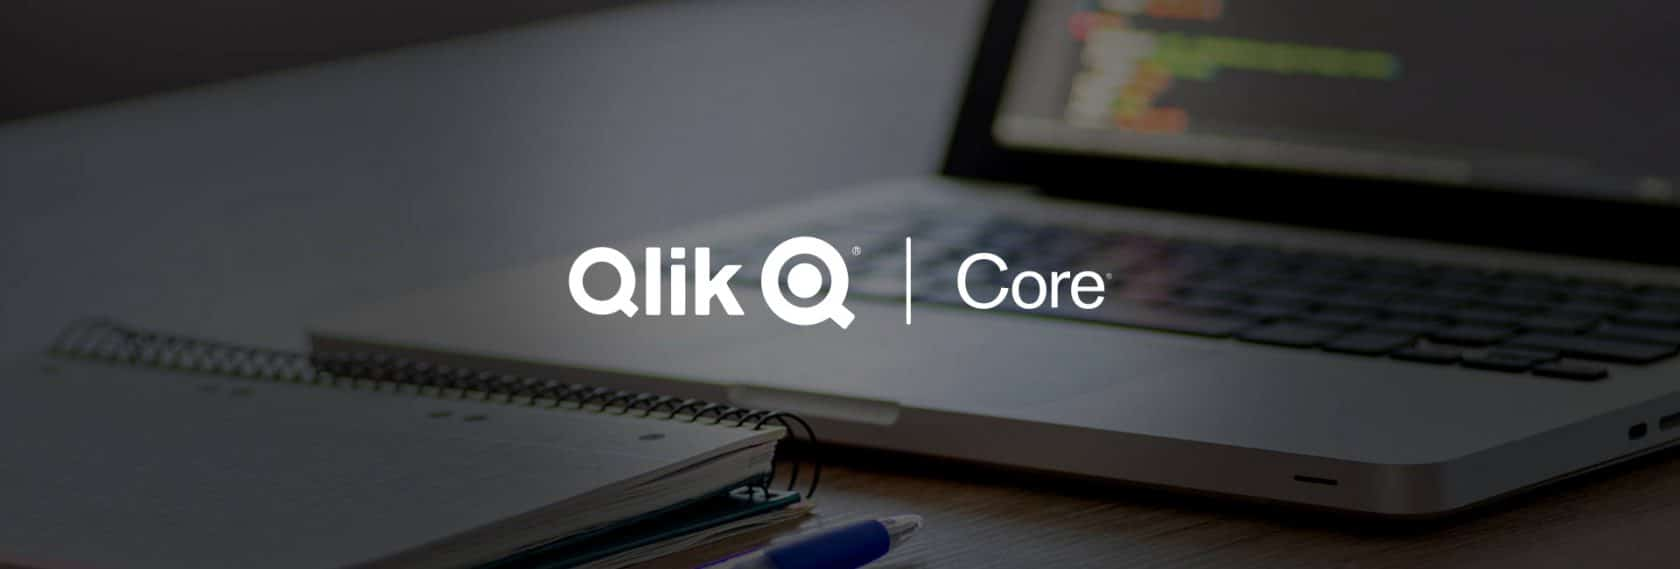 qlik core, qlik, qlik sense, qlik engine, qliktech, qlik associative engine, qlik technology, qlik software, qlik container, qlik javascript,